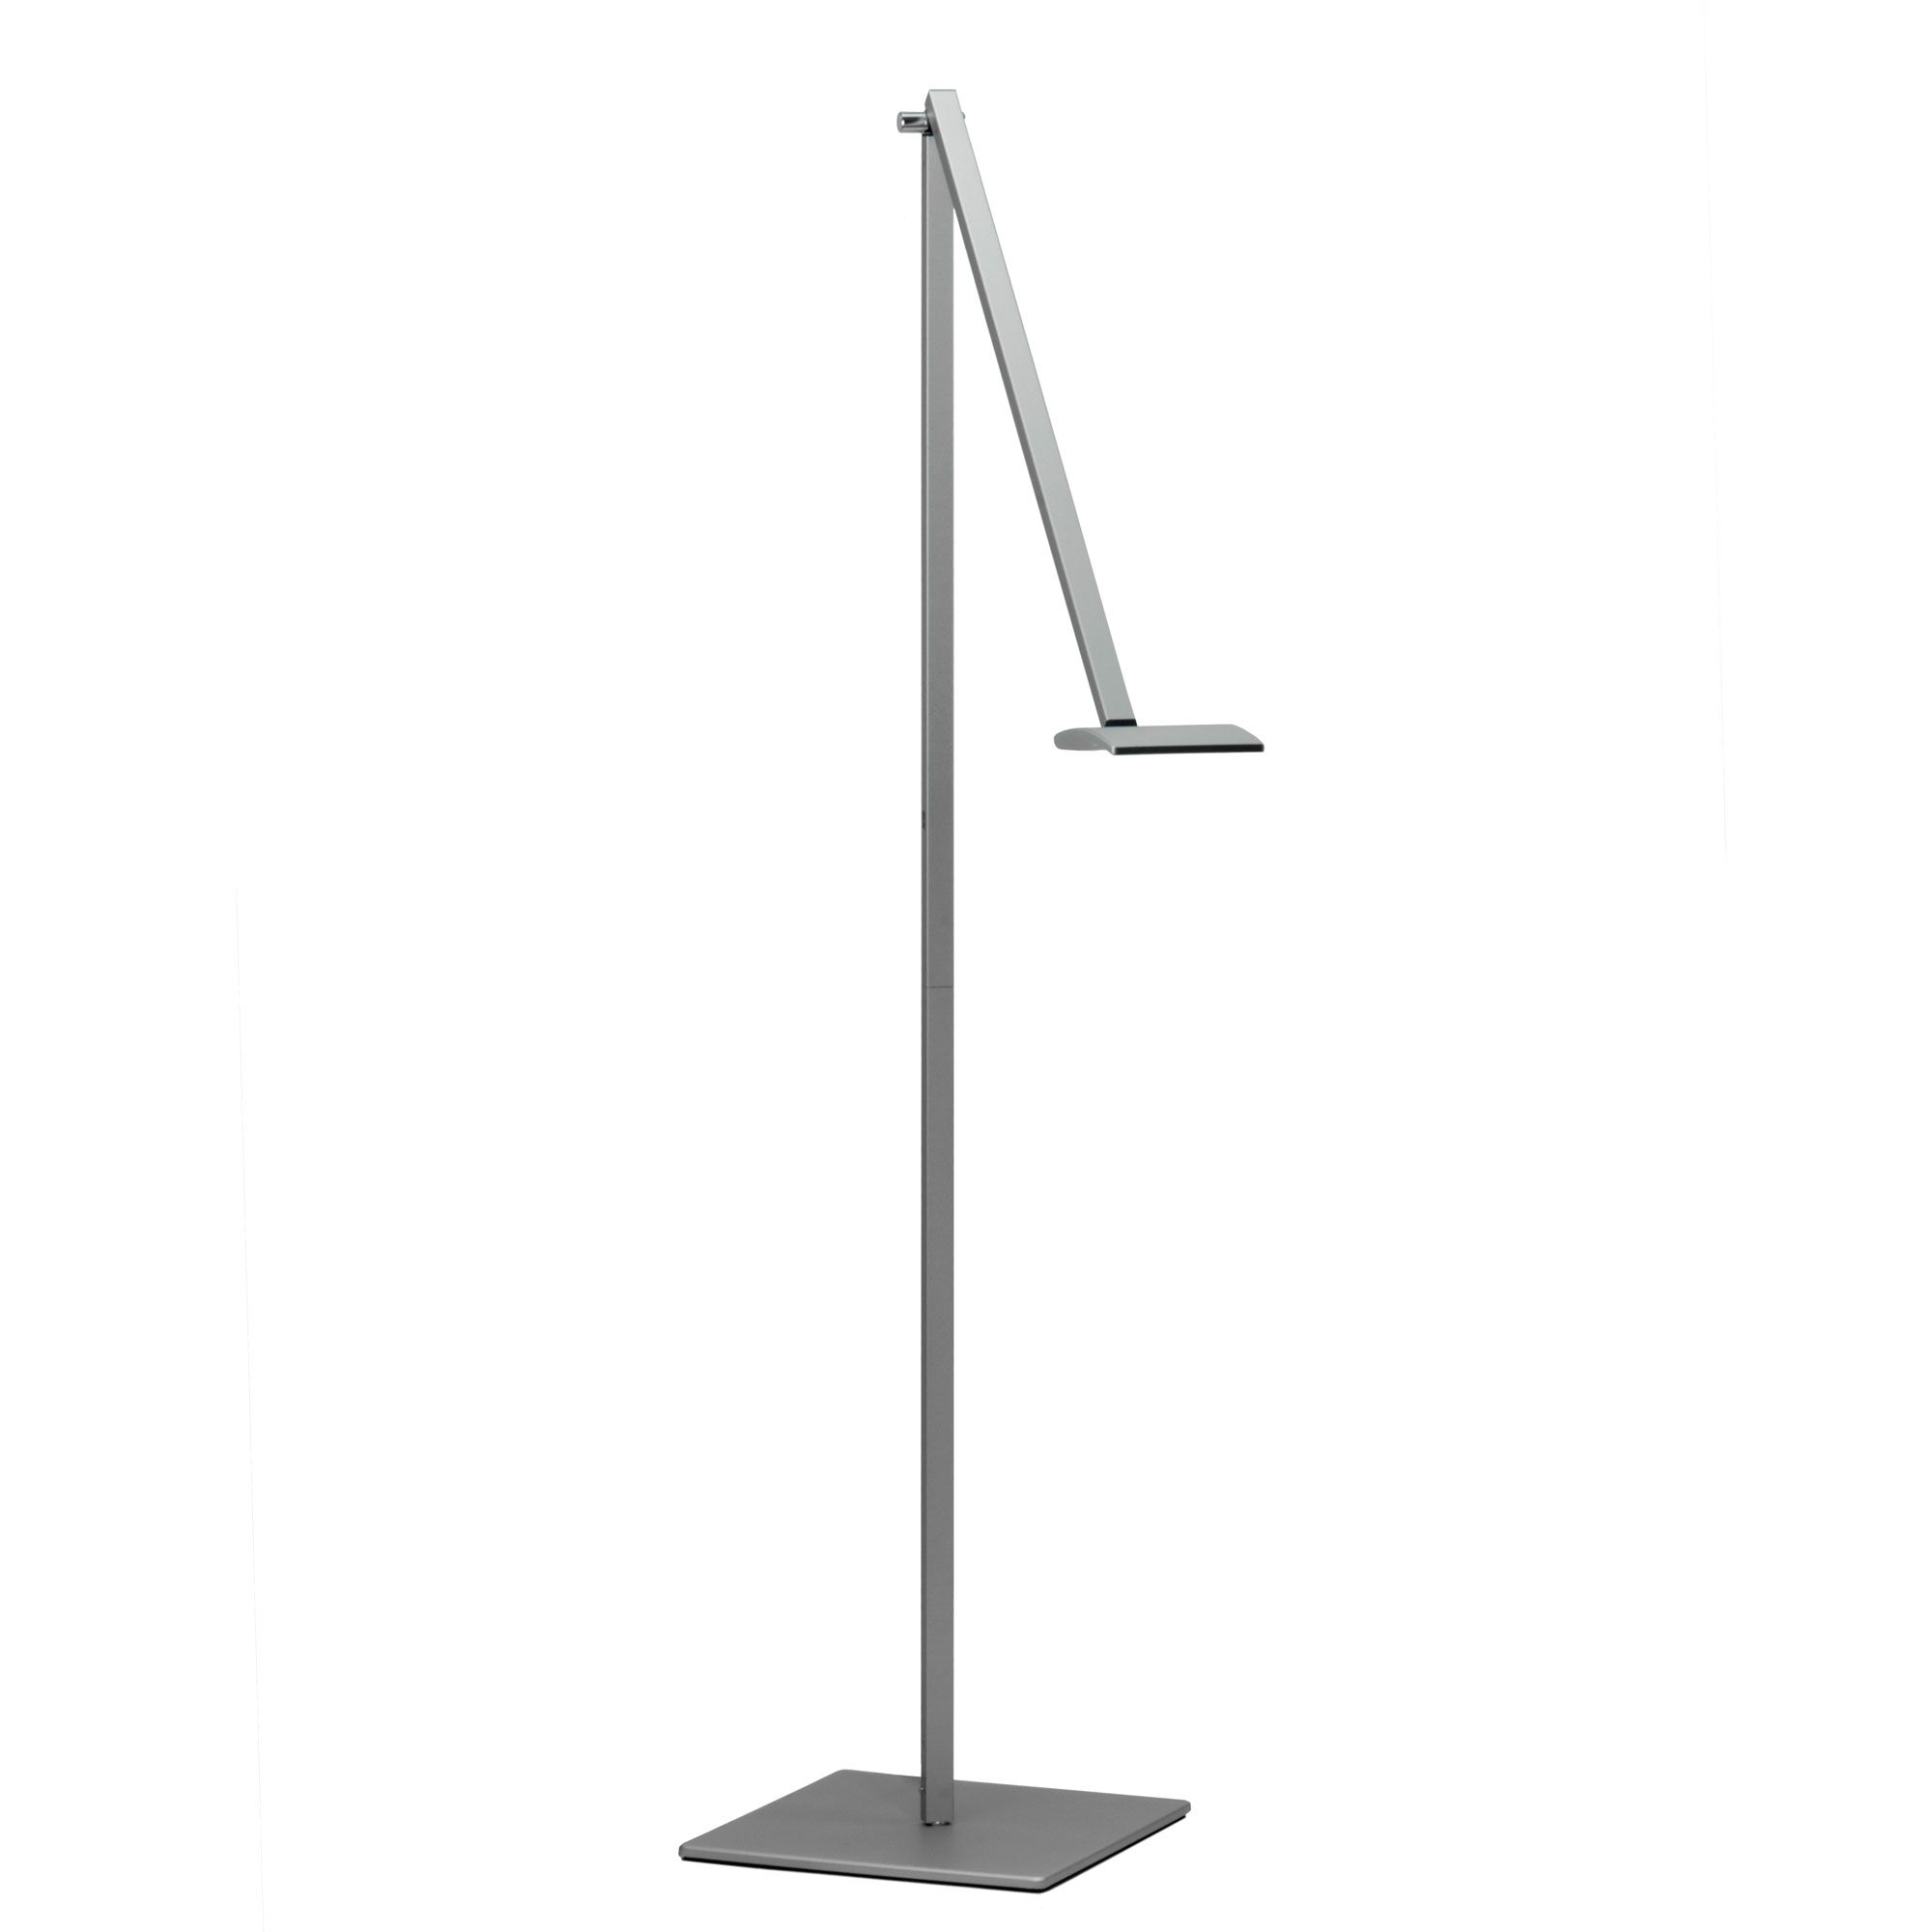 Mosso Pro Tunable White Floor Lamp By Koncept Lighting Ar2001 Sil Flr In 2020 Lamp Floor Lamp White Floor Lamp